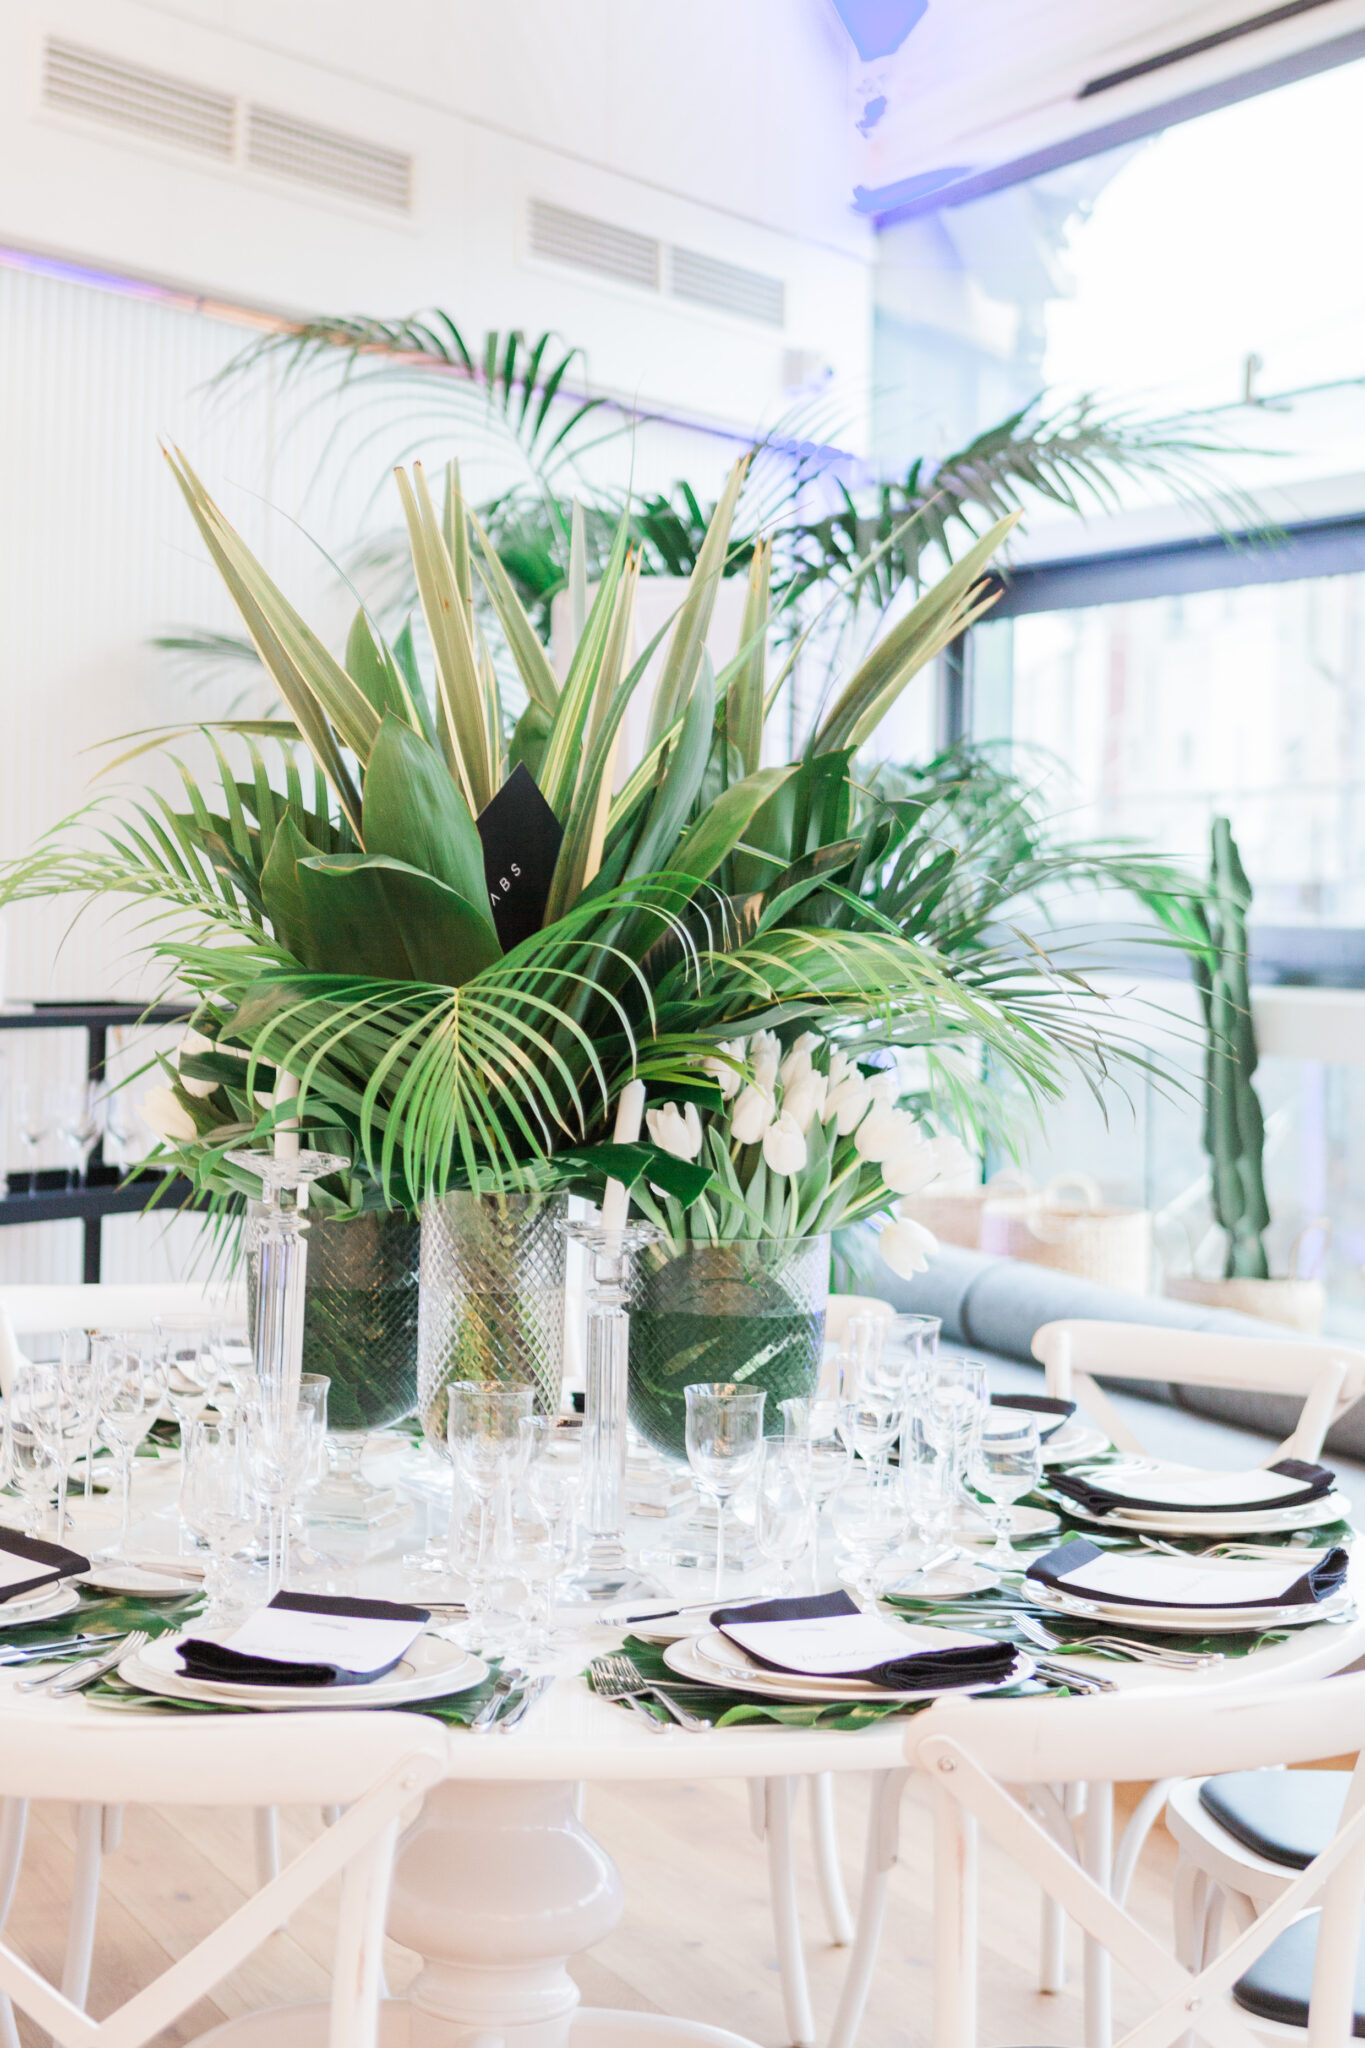 Unique tropical greenery center piece on a table set for a wedding reception in London